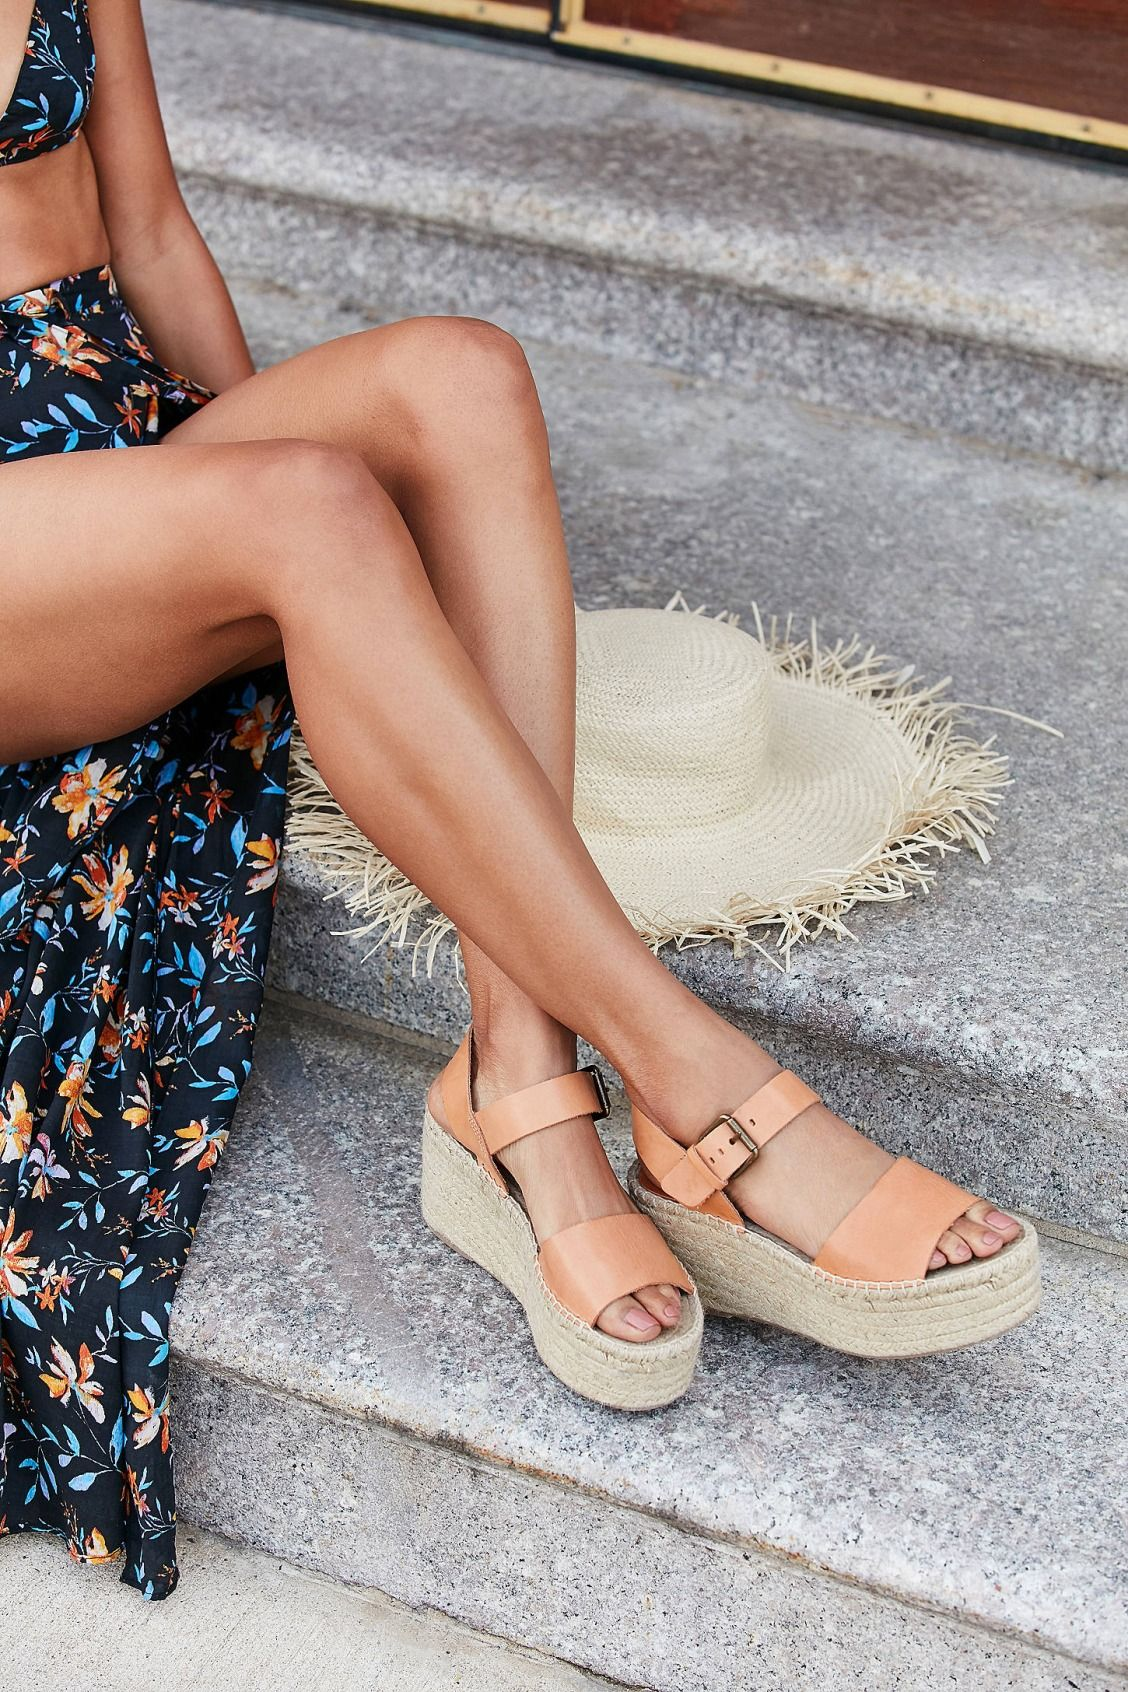 86d6d3c960 If you're looking for some cute platform sandals to wear this summer, then  you won't be disappointed with this selection! Every girl loves a good  heel, ...